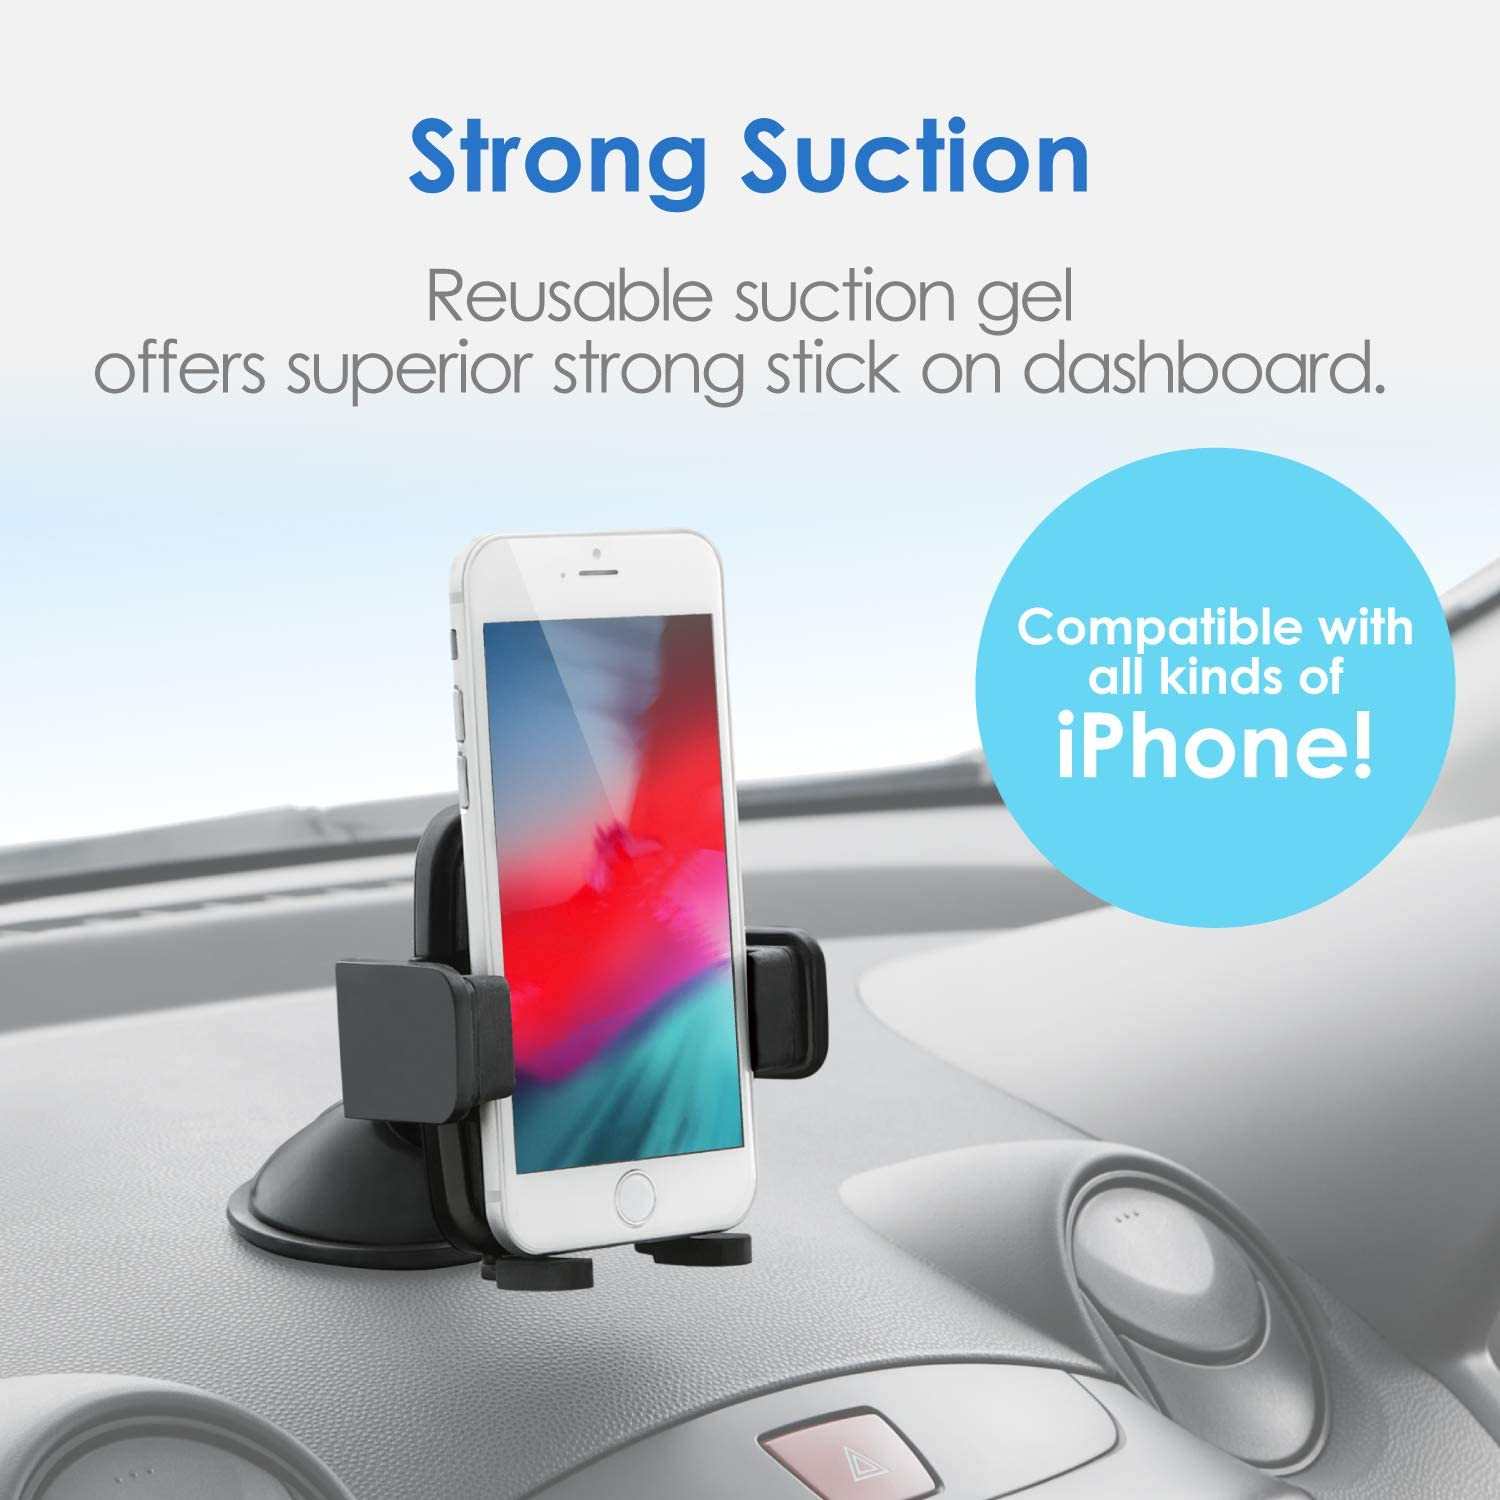 36o/° Rotate Strong Sticky Gel//Car Mount Cradle with One-Touch Design Black EC-SH01BK ELECOM Cell Phone Holder for Car//Dashboard